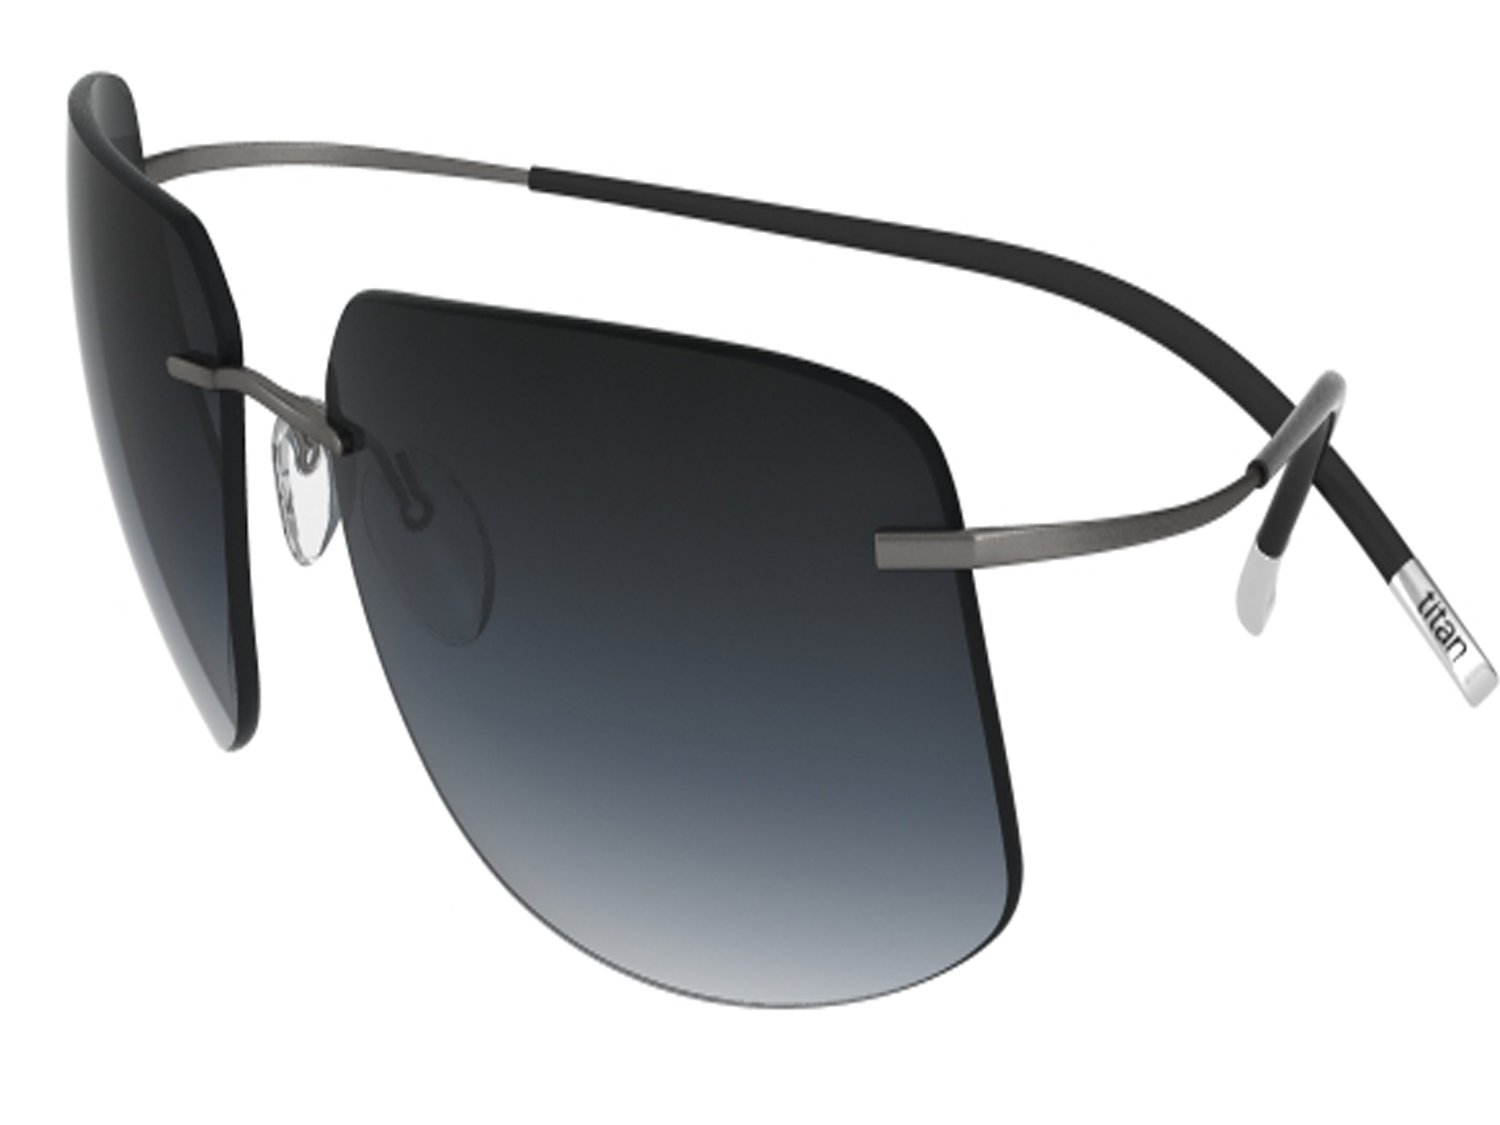 Silhouette Sunglasses Titan Minimal ART The Icon 8698 medium to large fit (ruthenium silky matte / grey gradient lenses) by SILHOUETTE optical